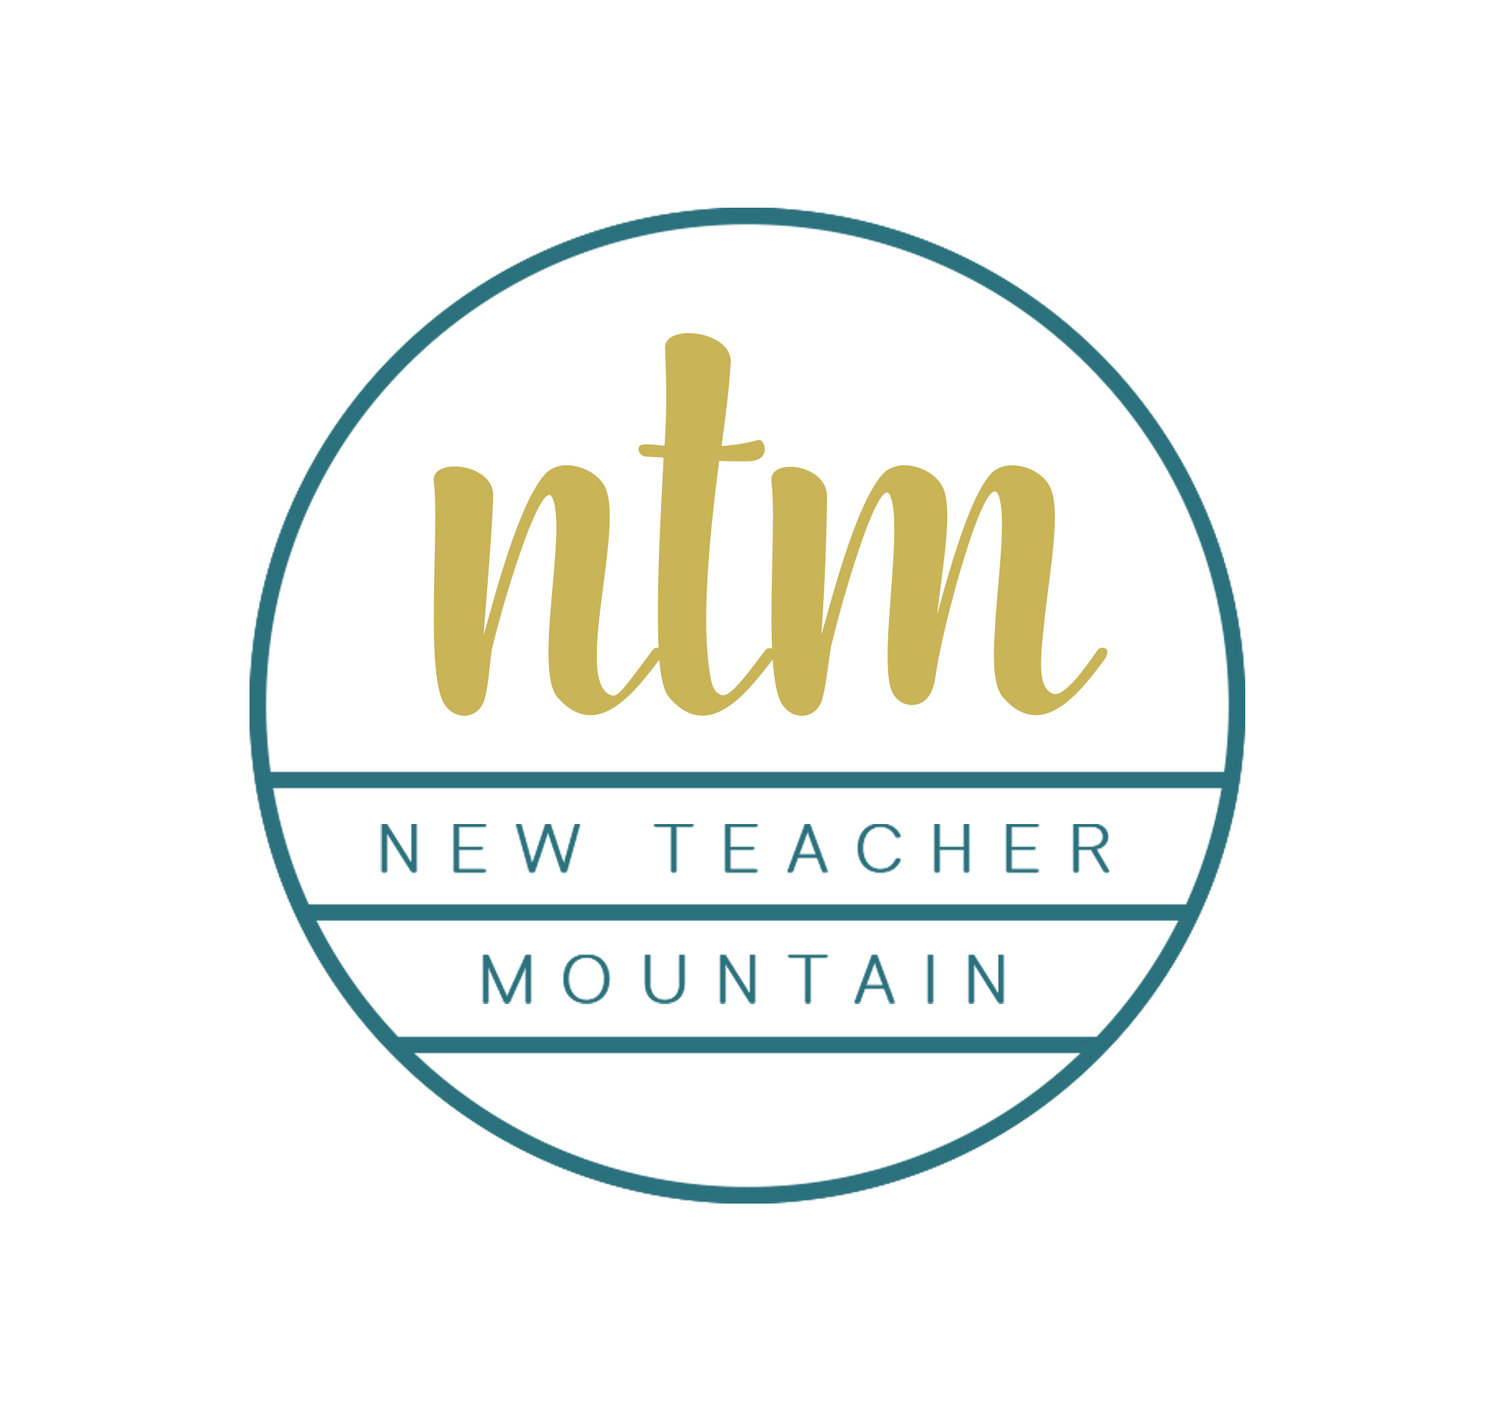 New Teacher Mountain